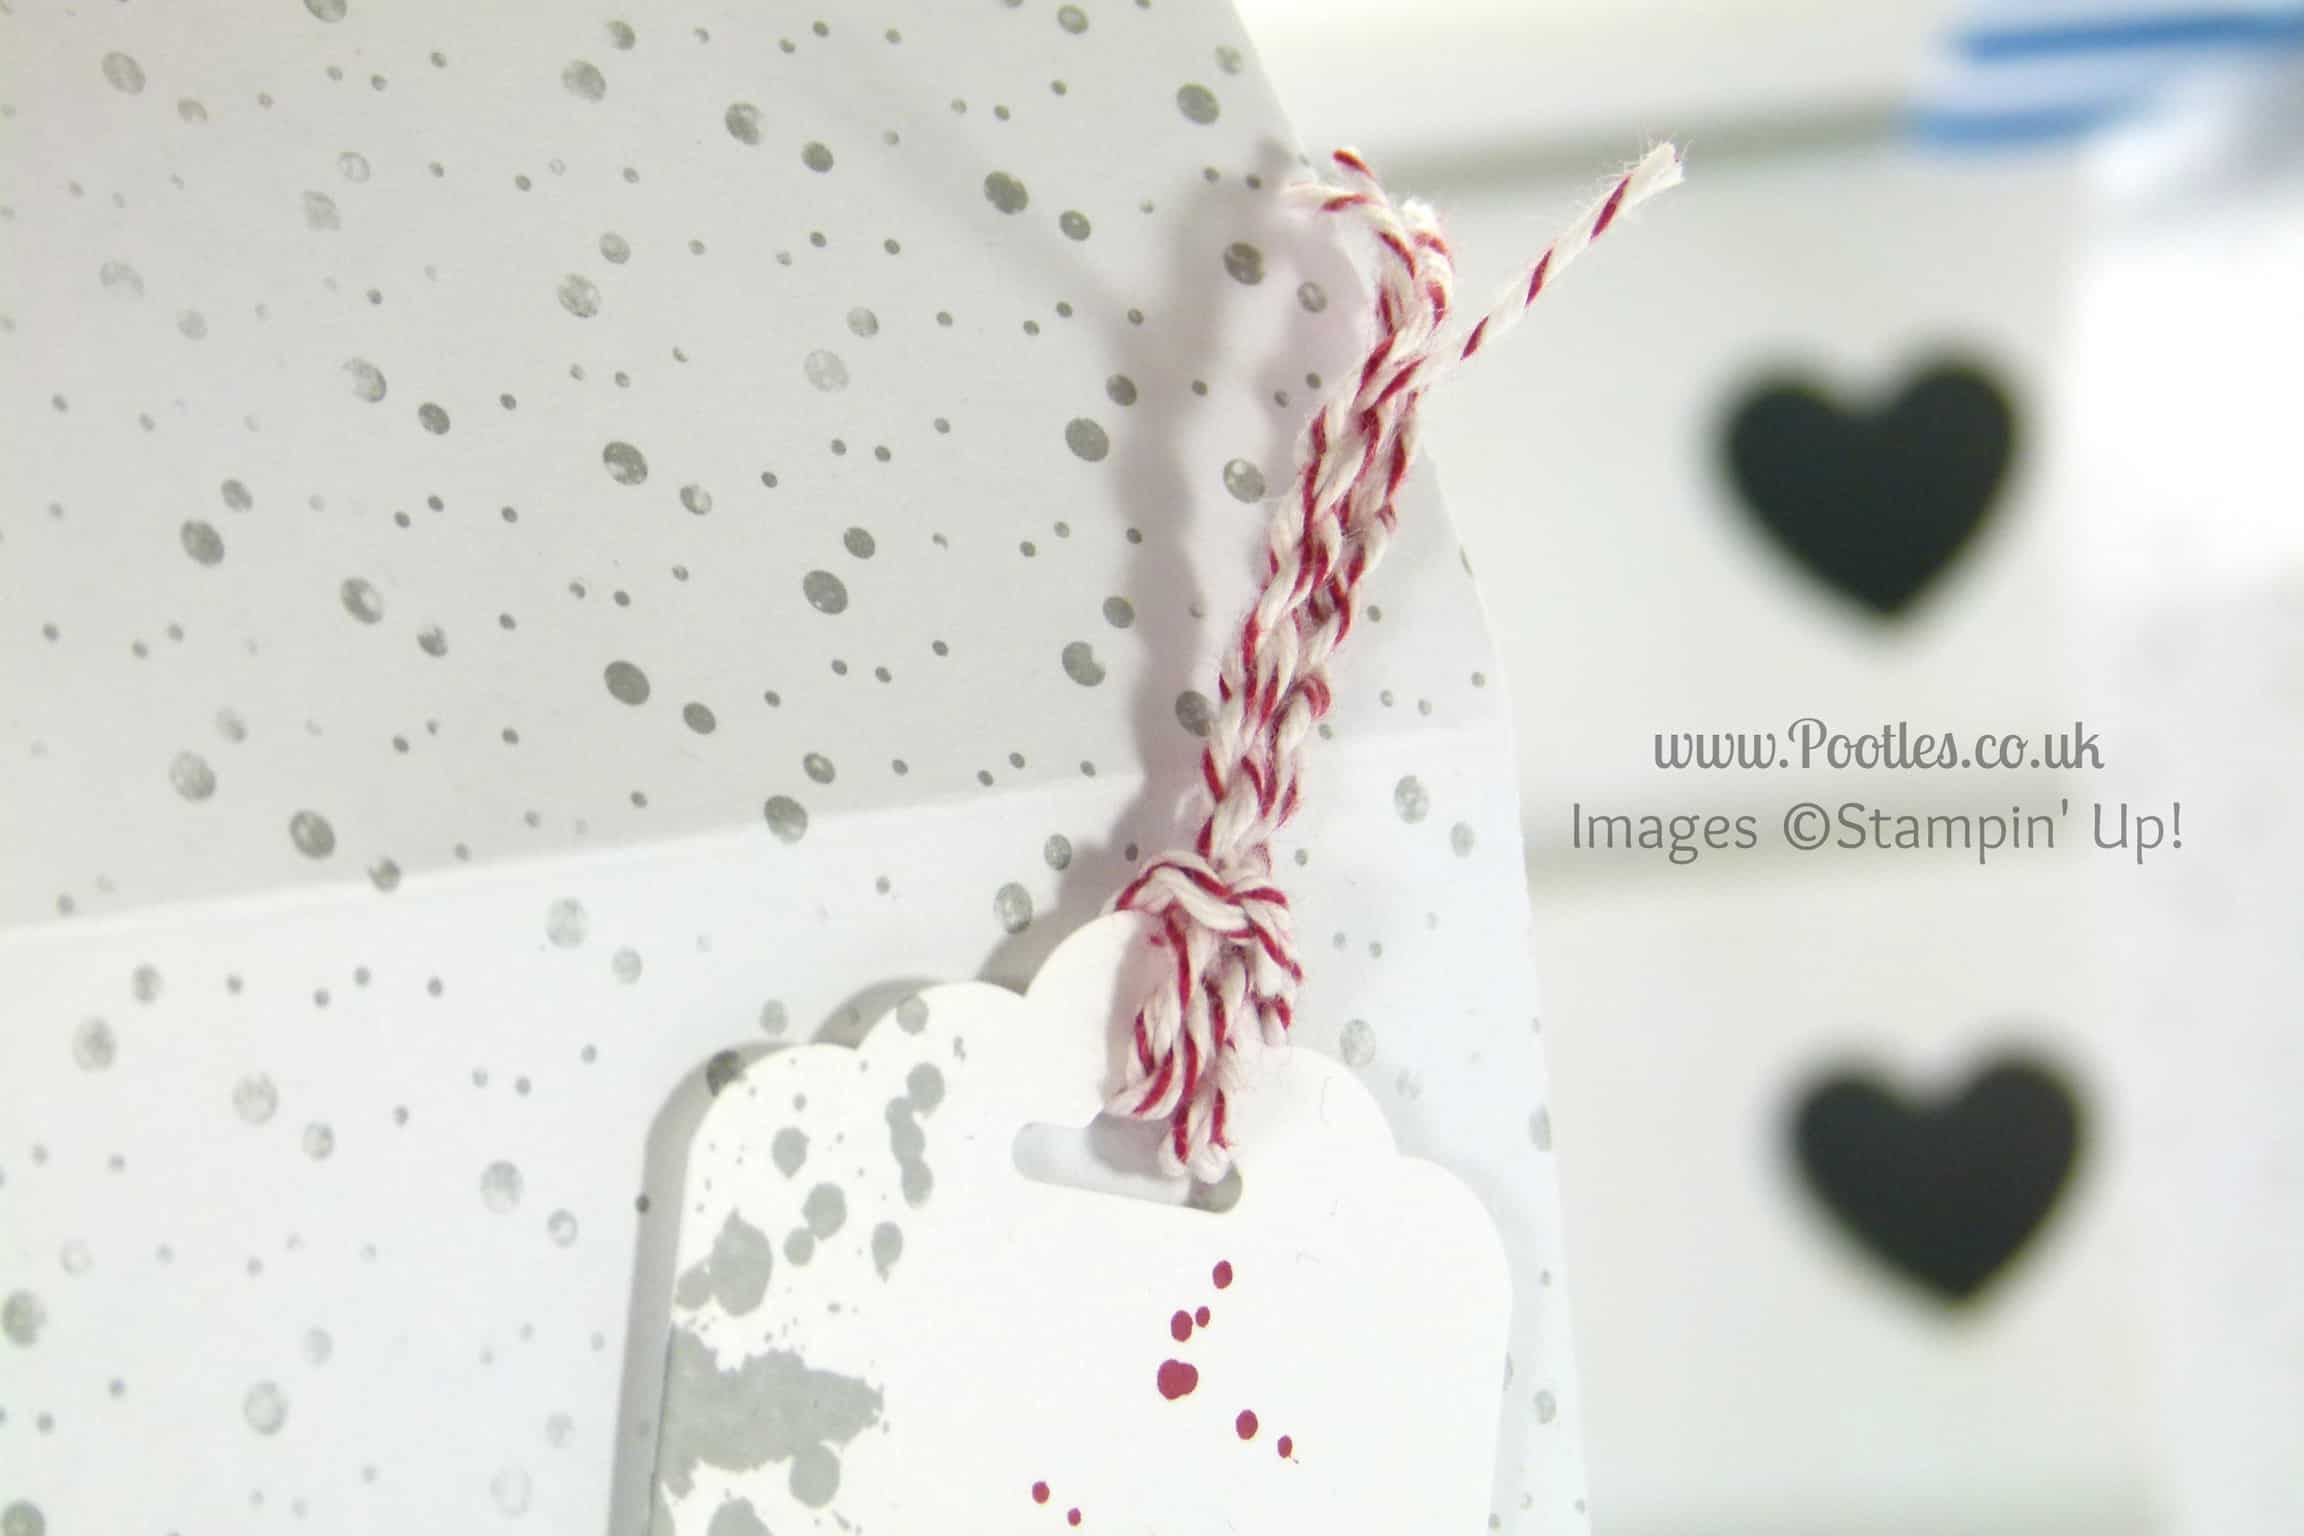 Stampin' Up! UK Independent Demonstrator Pootles - Super Huge Extra Large Paper Bag Tutorial Using Stampin' Up! DSP Twisted Bakers Twine Detail